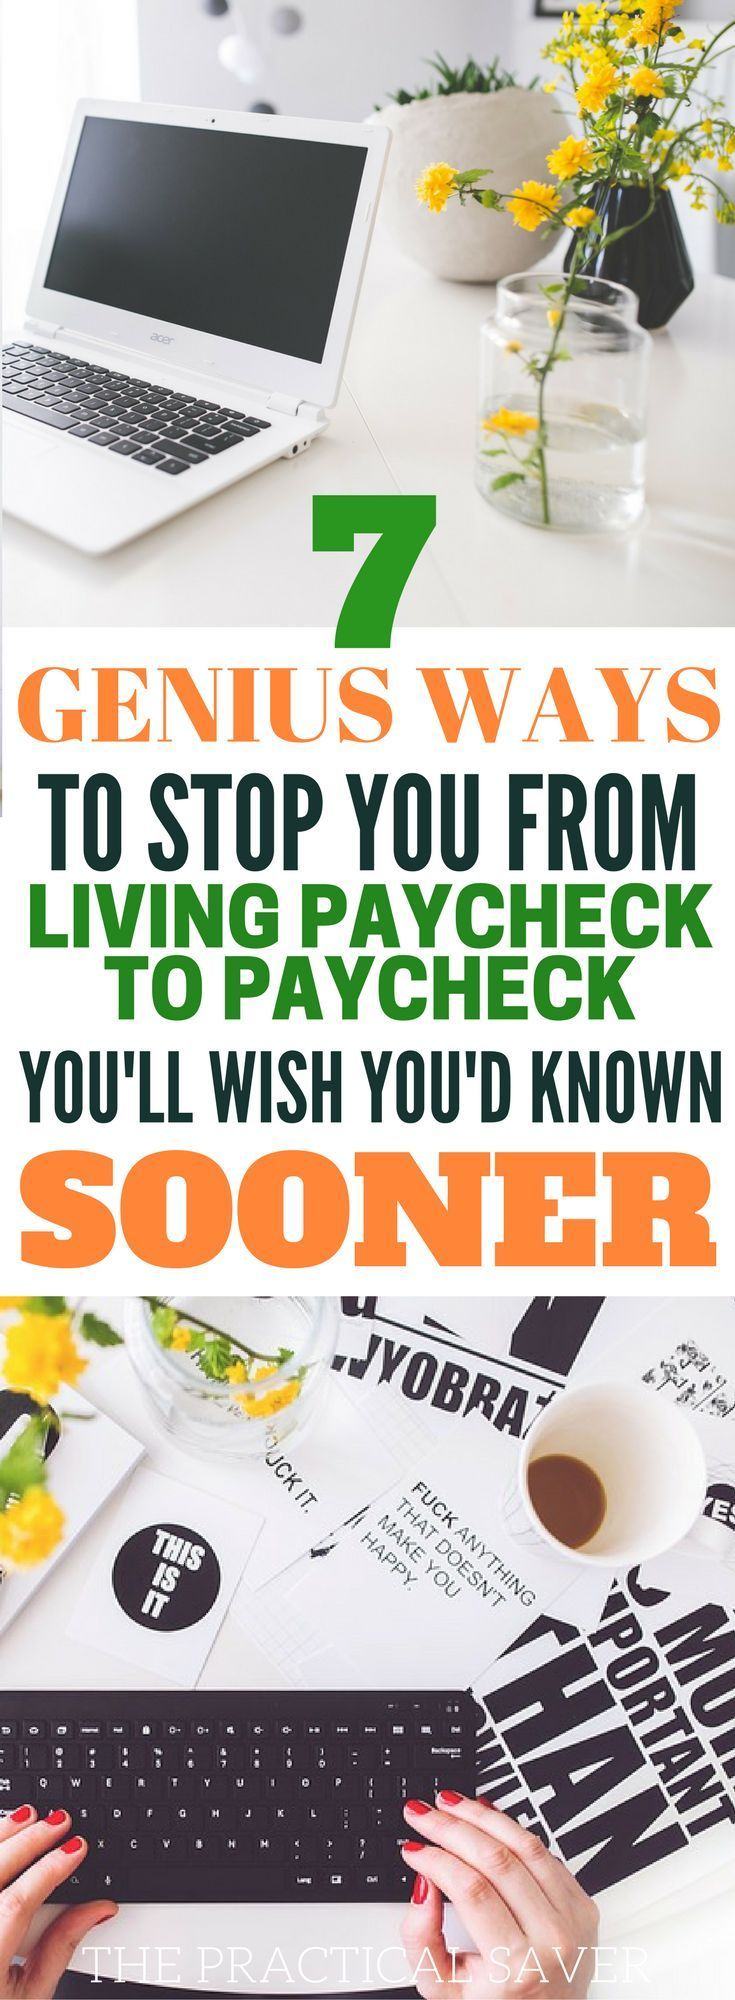 paycheck to paycheck budget l frugal living tips l save money fast l payoff debt fast l how to payoff debt l budget for beginners l side hustle ideas l stop spend money l money management tips l bills organization l money problem solving l personal finance in your 20s